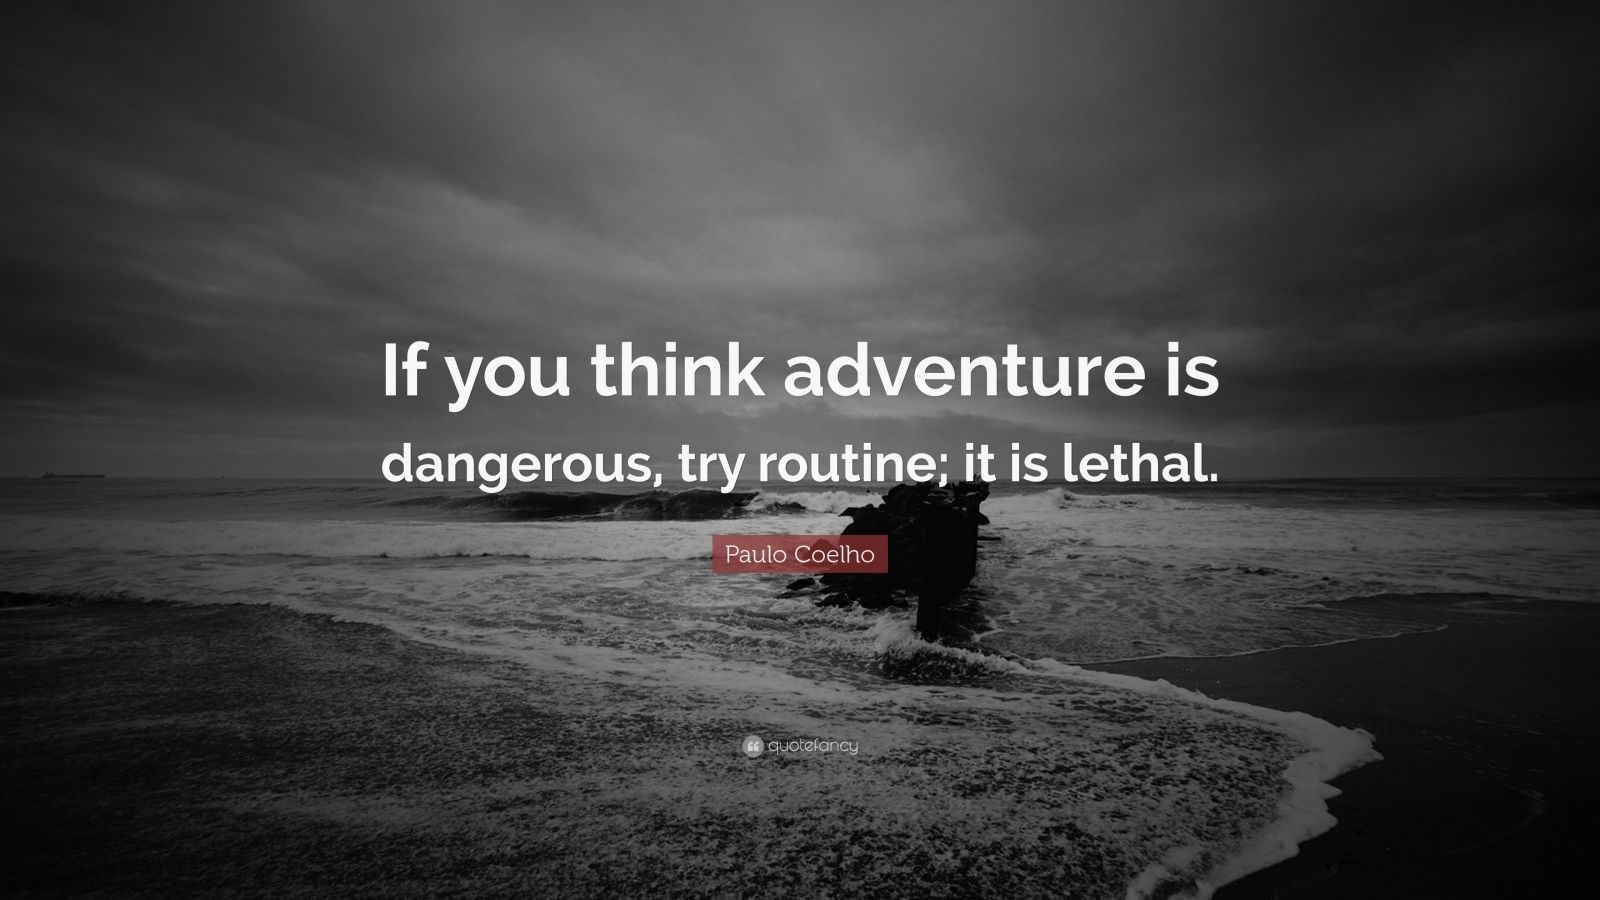 Paulo Coelho Quote If You Think Adventure Is Dangerous